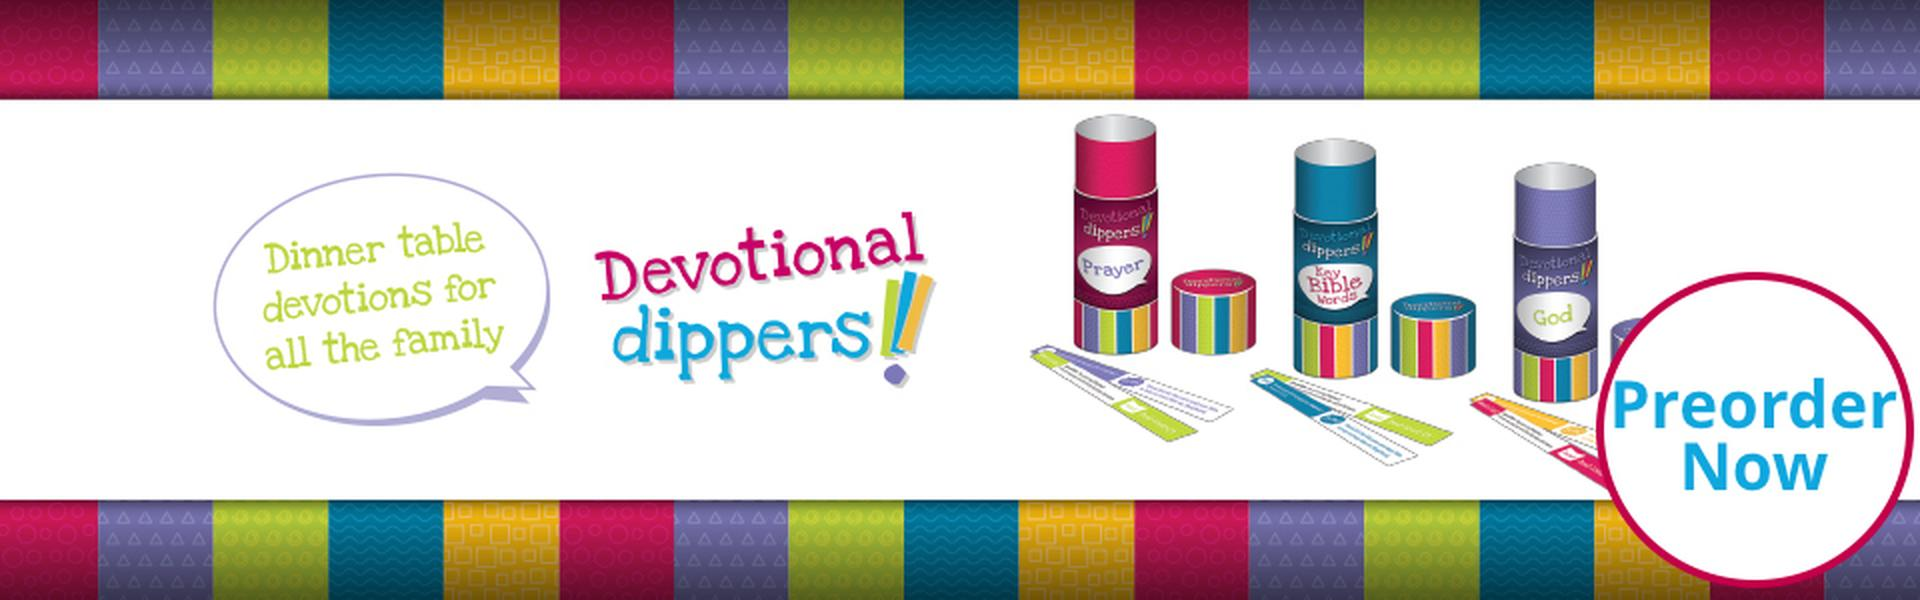 Devotional Dippers - dinner table Christian devotions for all the family. Preorder now!